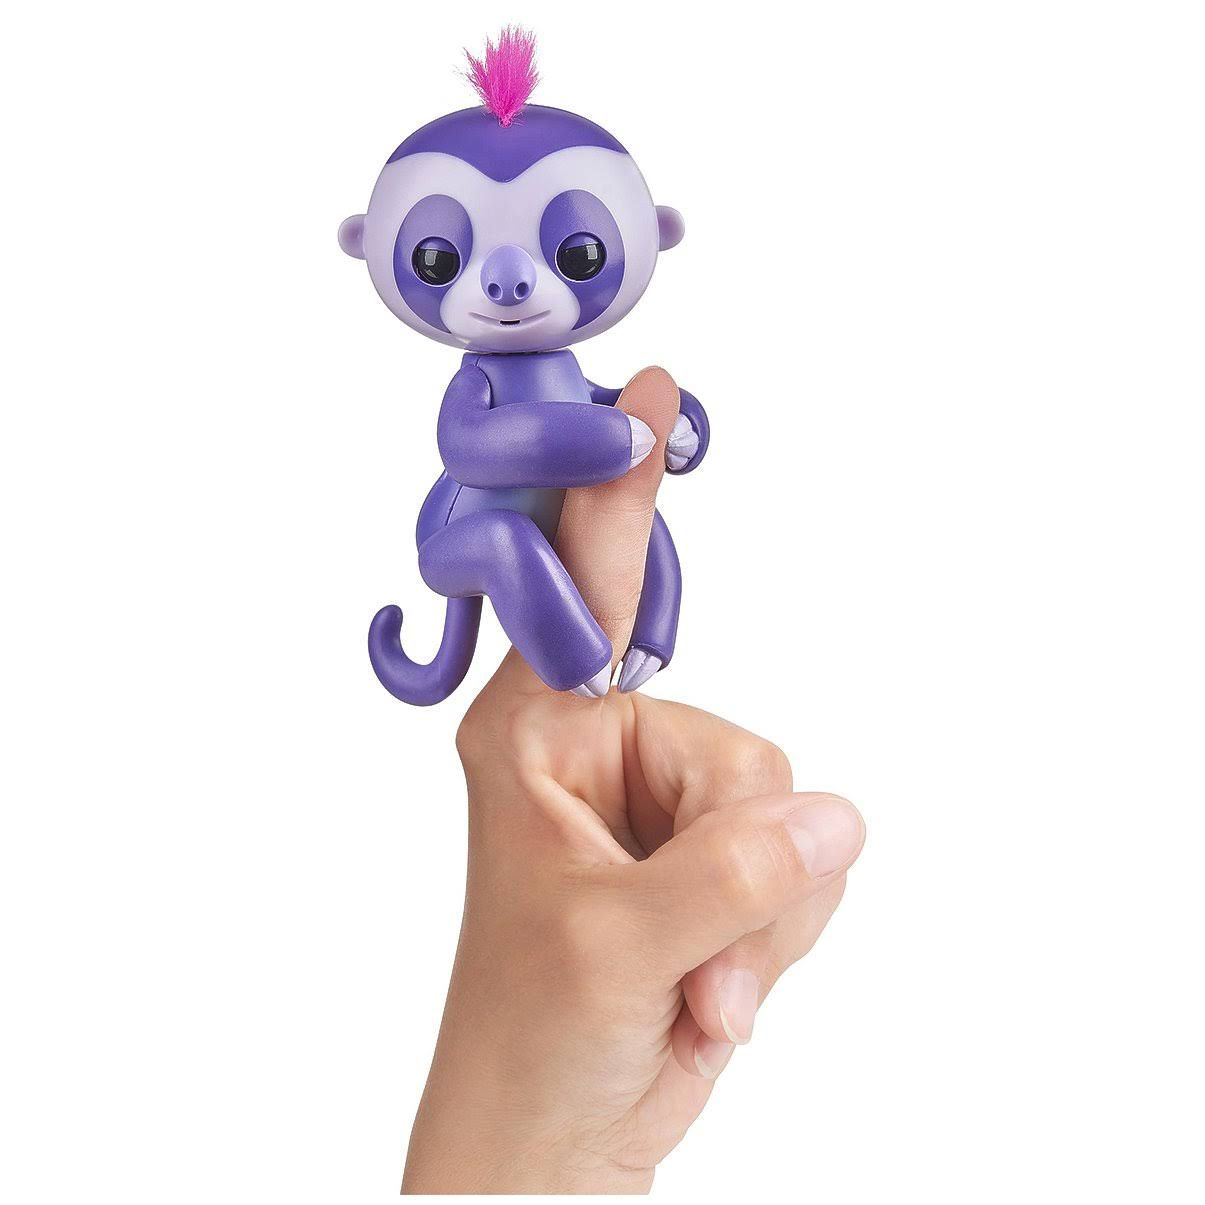 WowWee 3752 Authentic Fingerlings Baby Sloth Toy - Purple